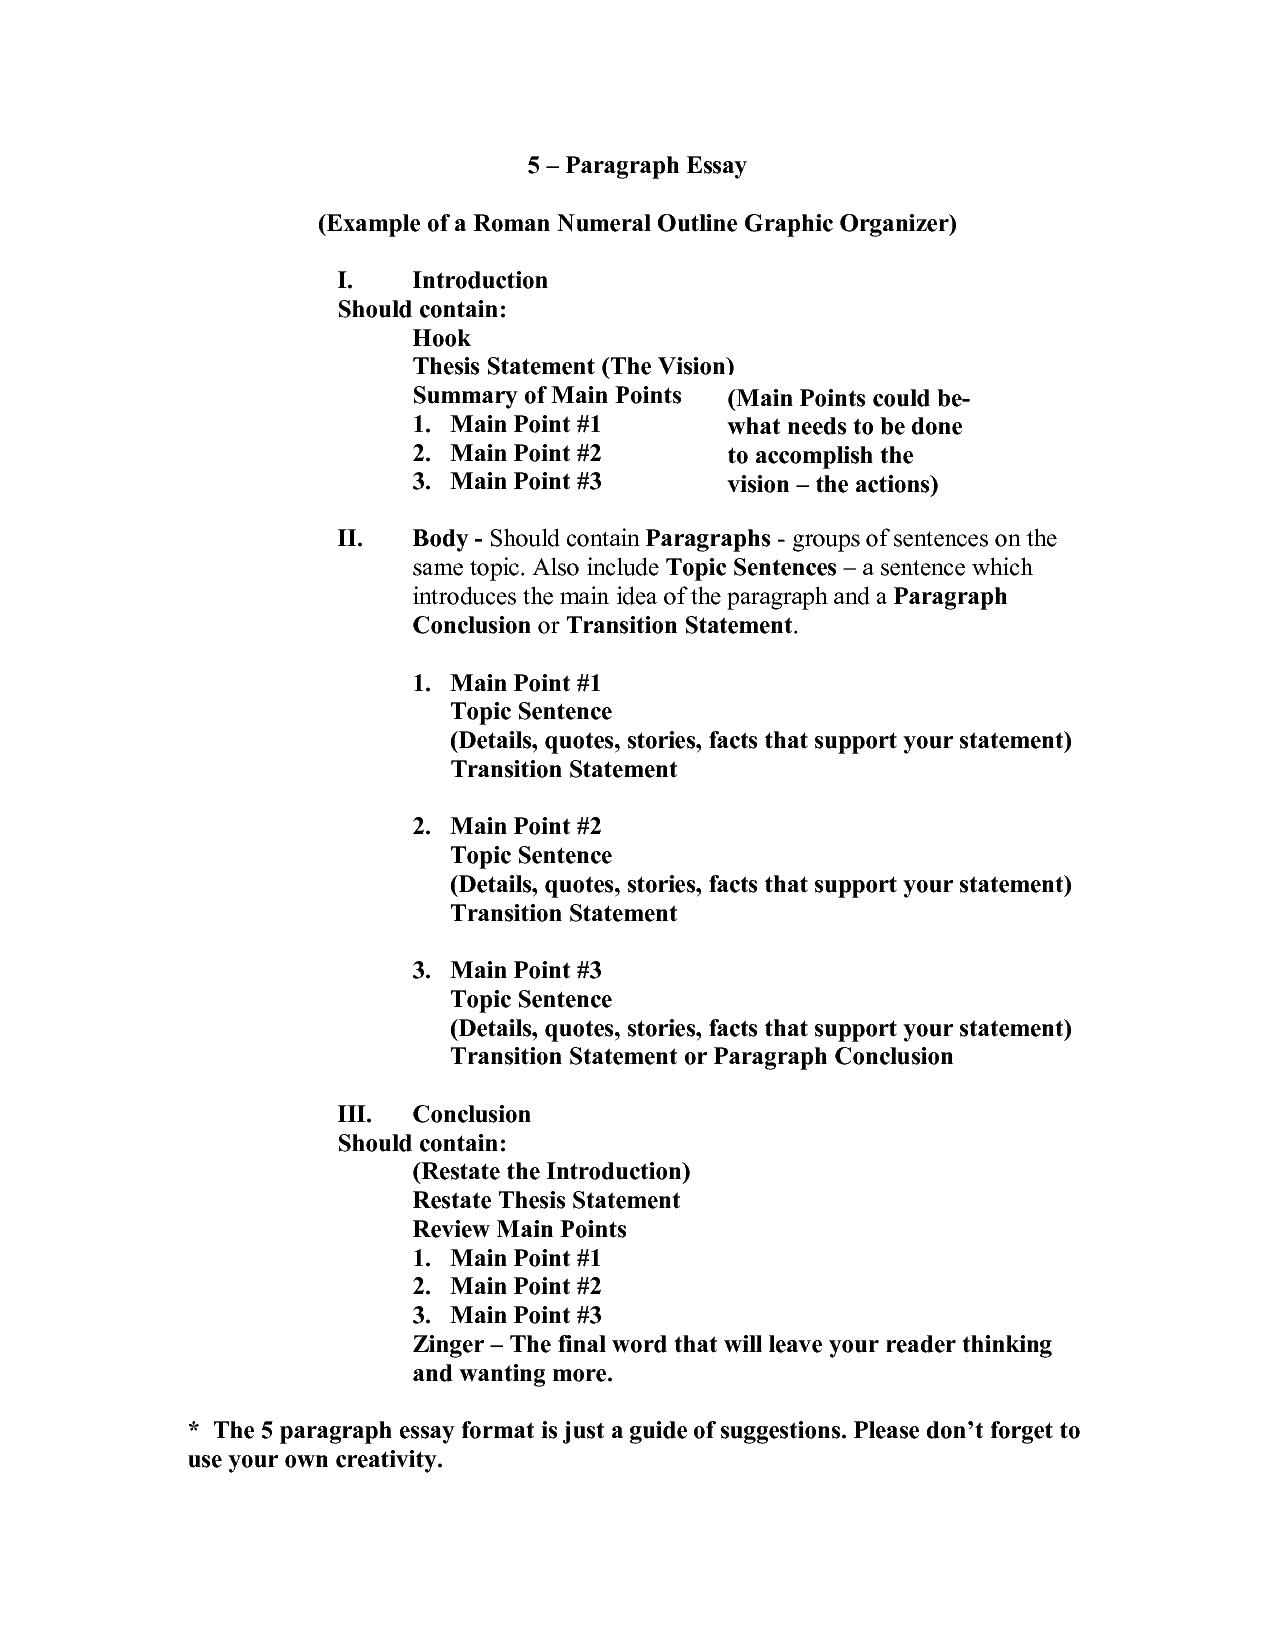 Worksheet Roman Numeral Outline